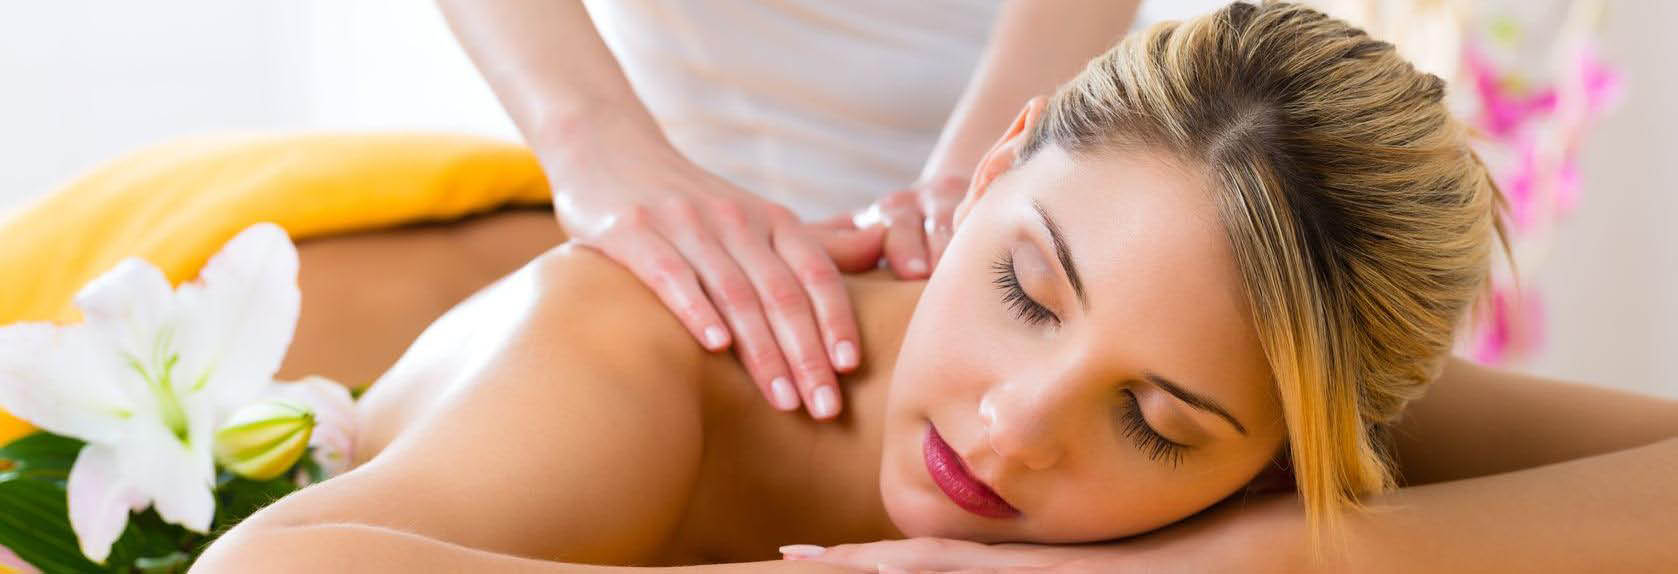 RELAX at Massage Studio Tampa Massage St Pete Massage Massage studio tampa bay